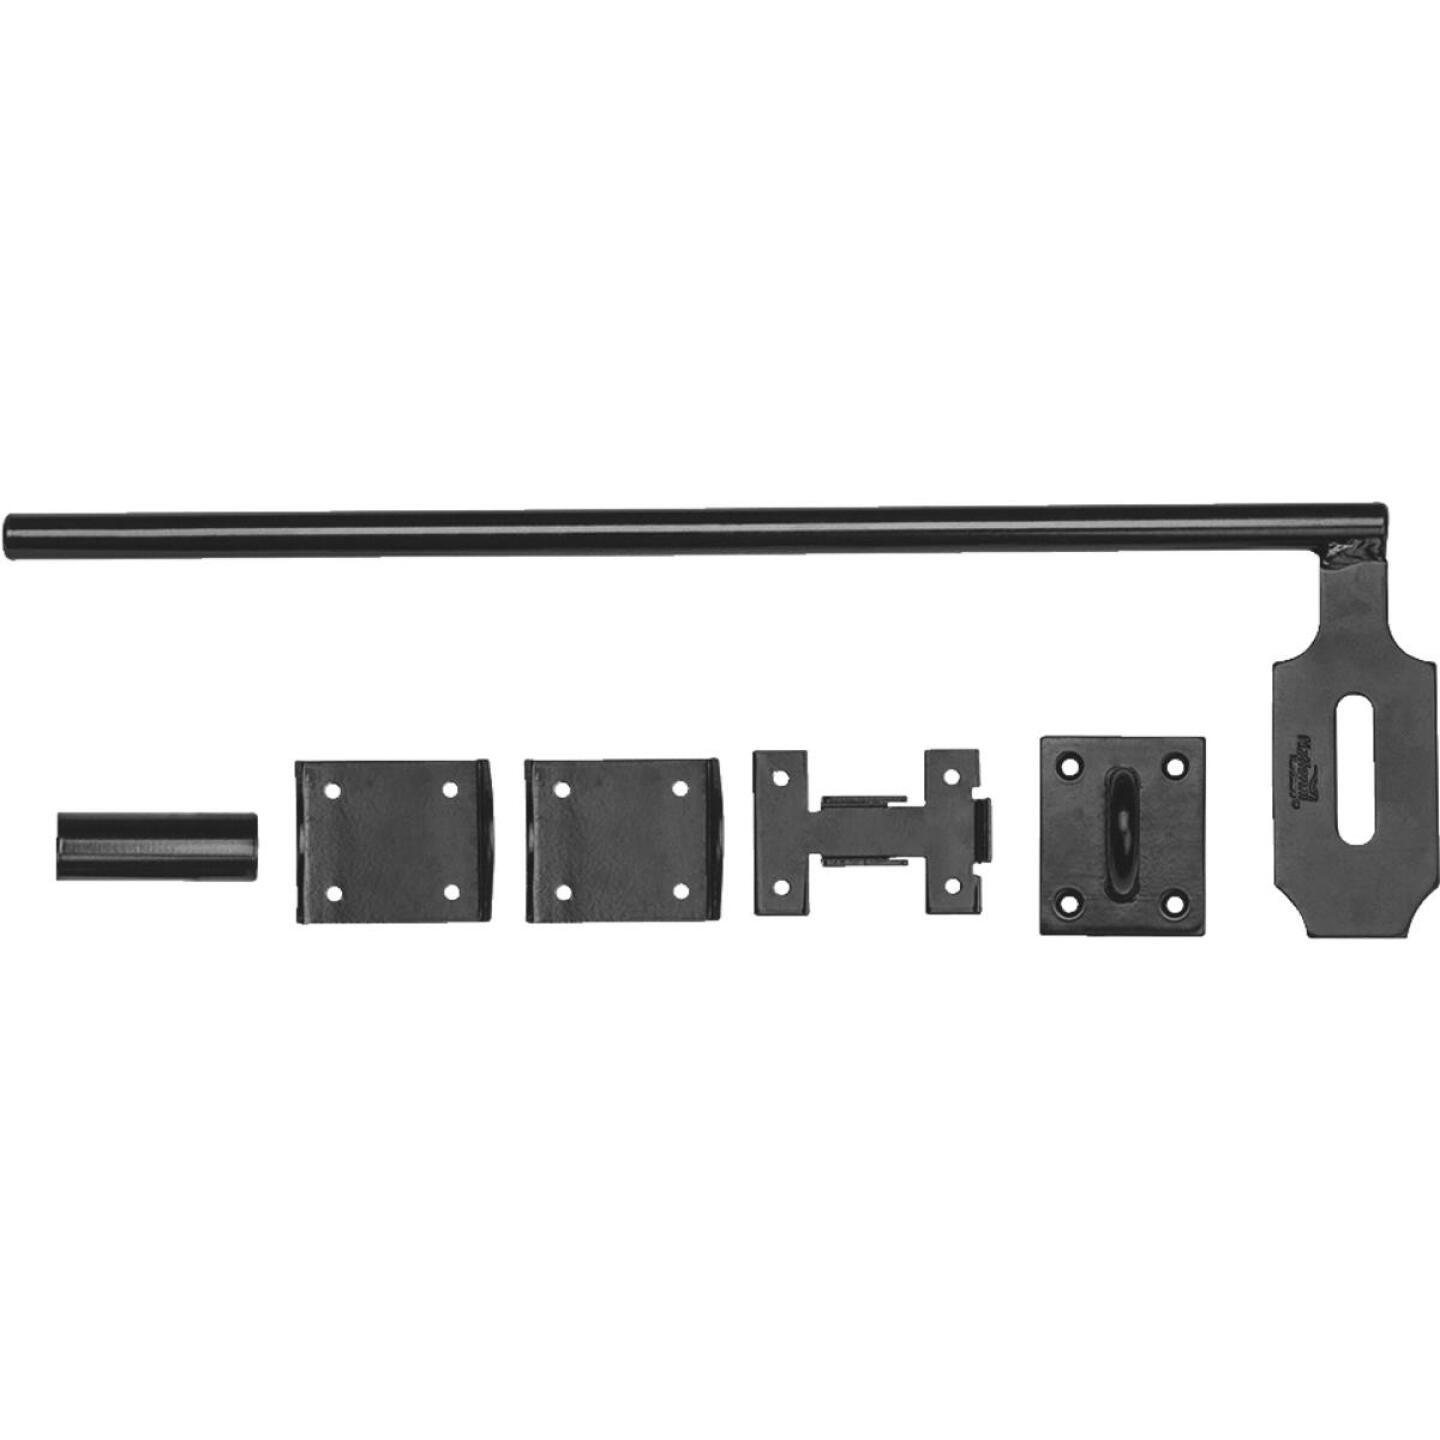 National 5/8 In. X 18 In. Black Steel Lock Cane Bolt Image 1